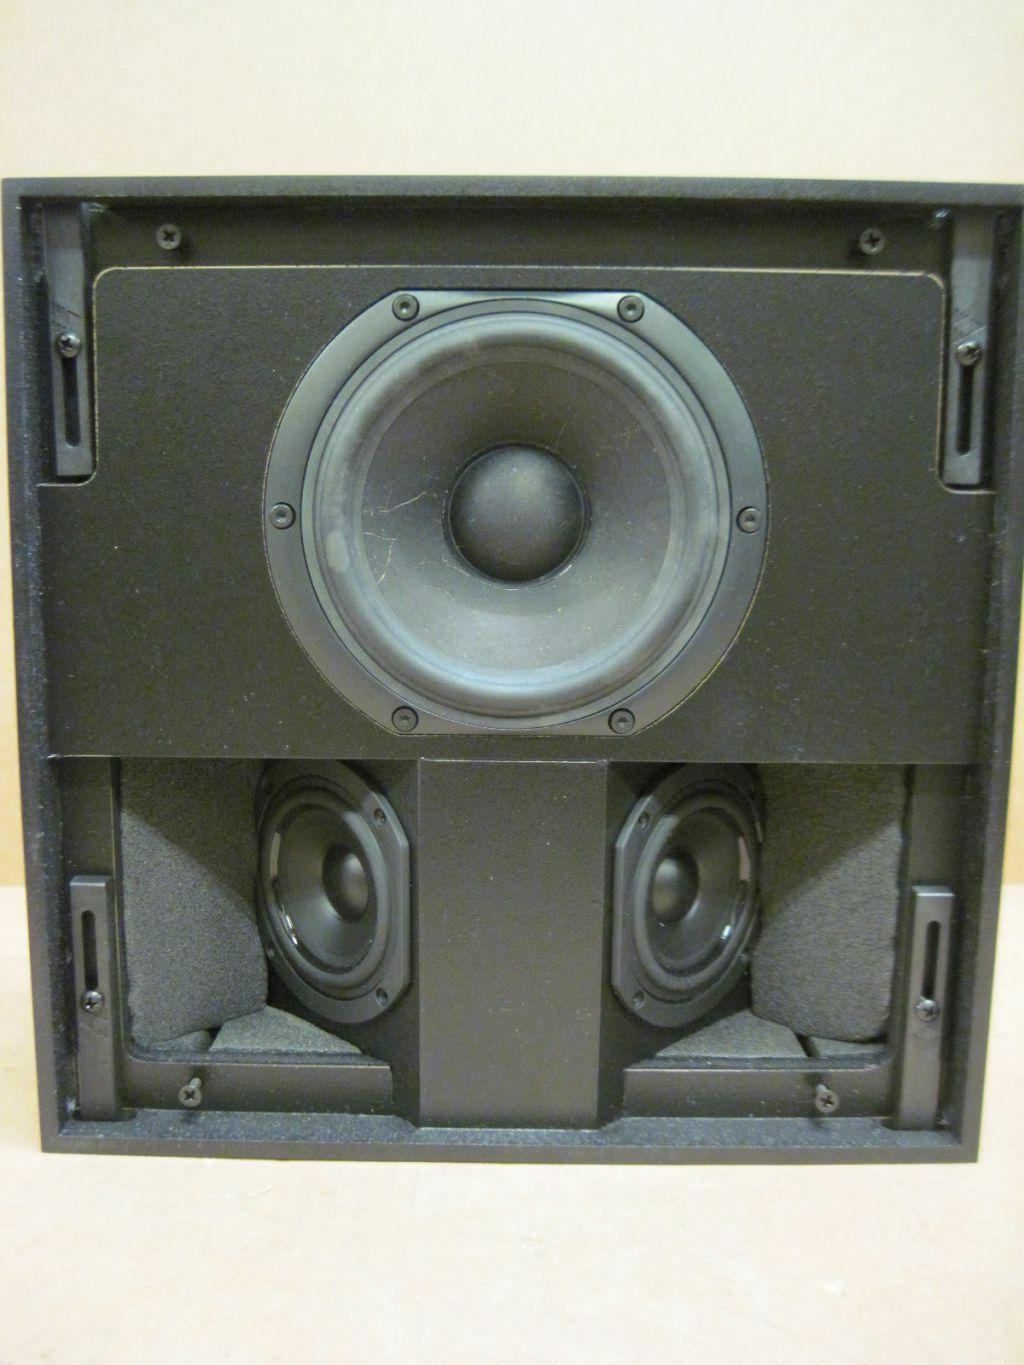 Imagine Audio IA-R1-SURiW Class Surround Speakers